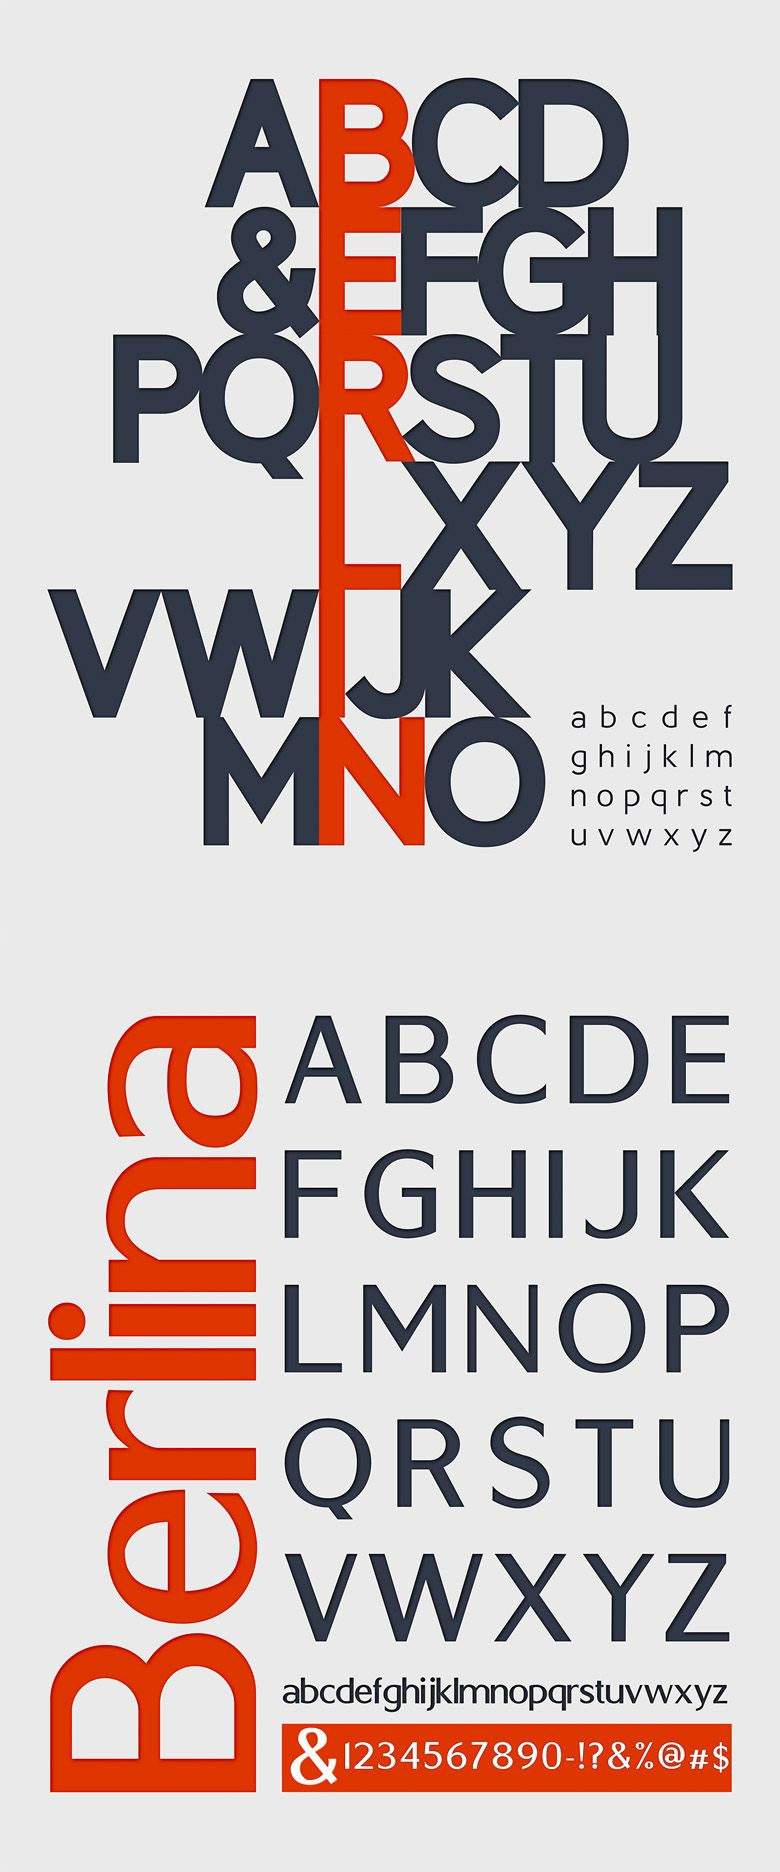 23 Beautiful Free Fonts For Your Next Design Project   Adobe